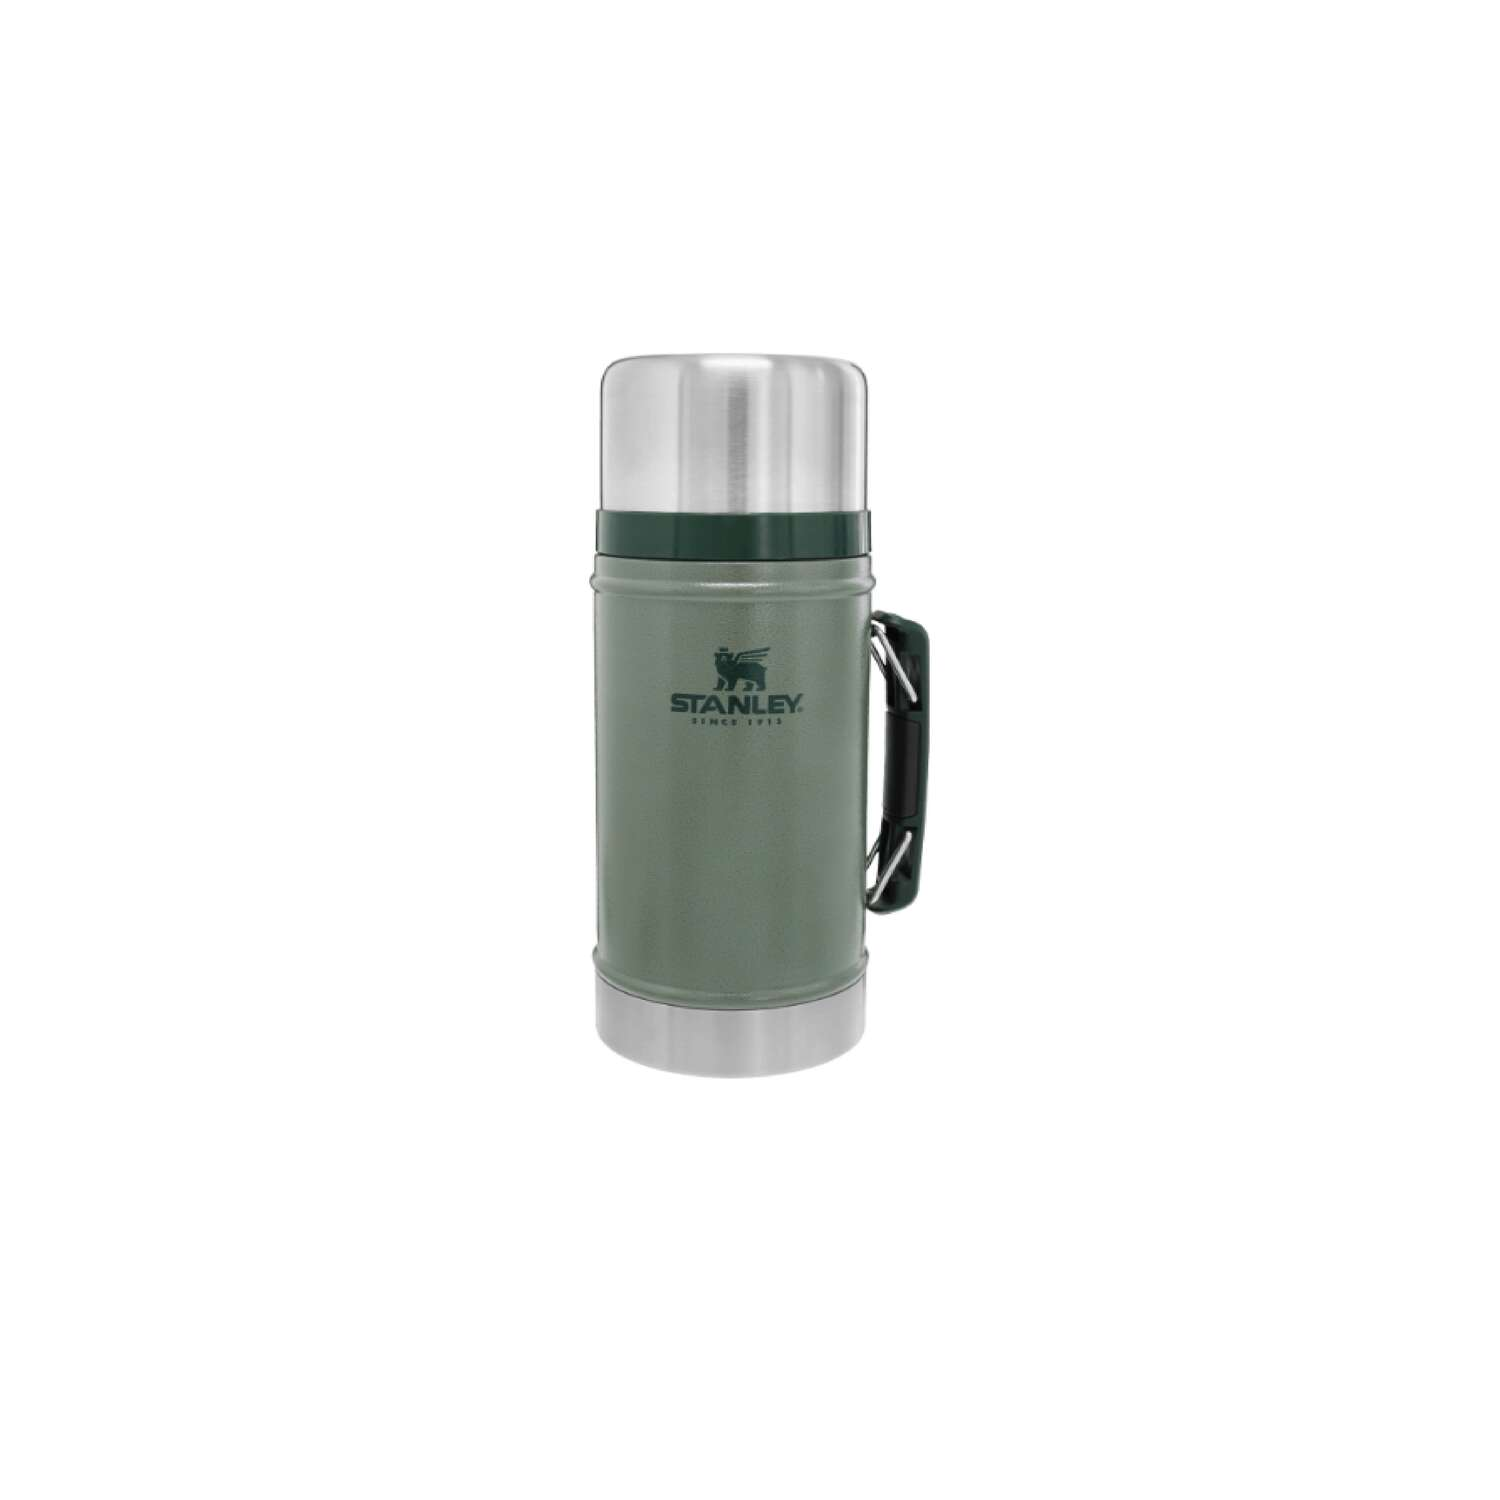 Stanley  1 oz. Classic  Insulated Bottle  Hammertone Green